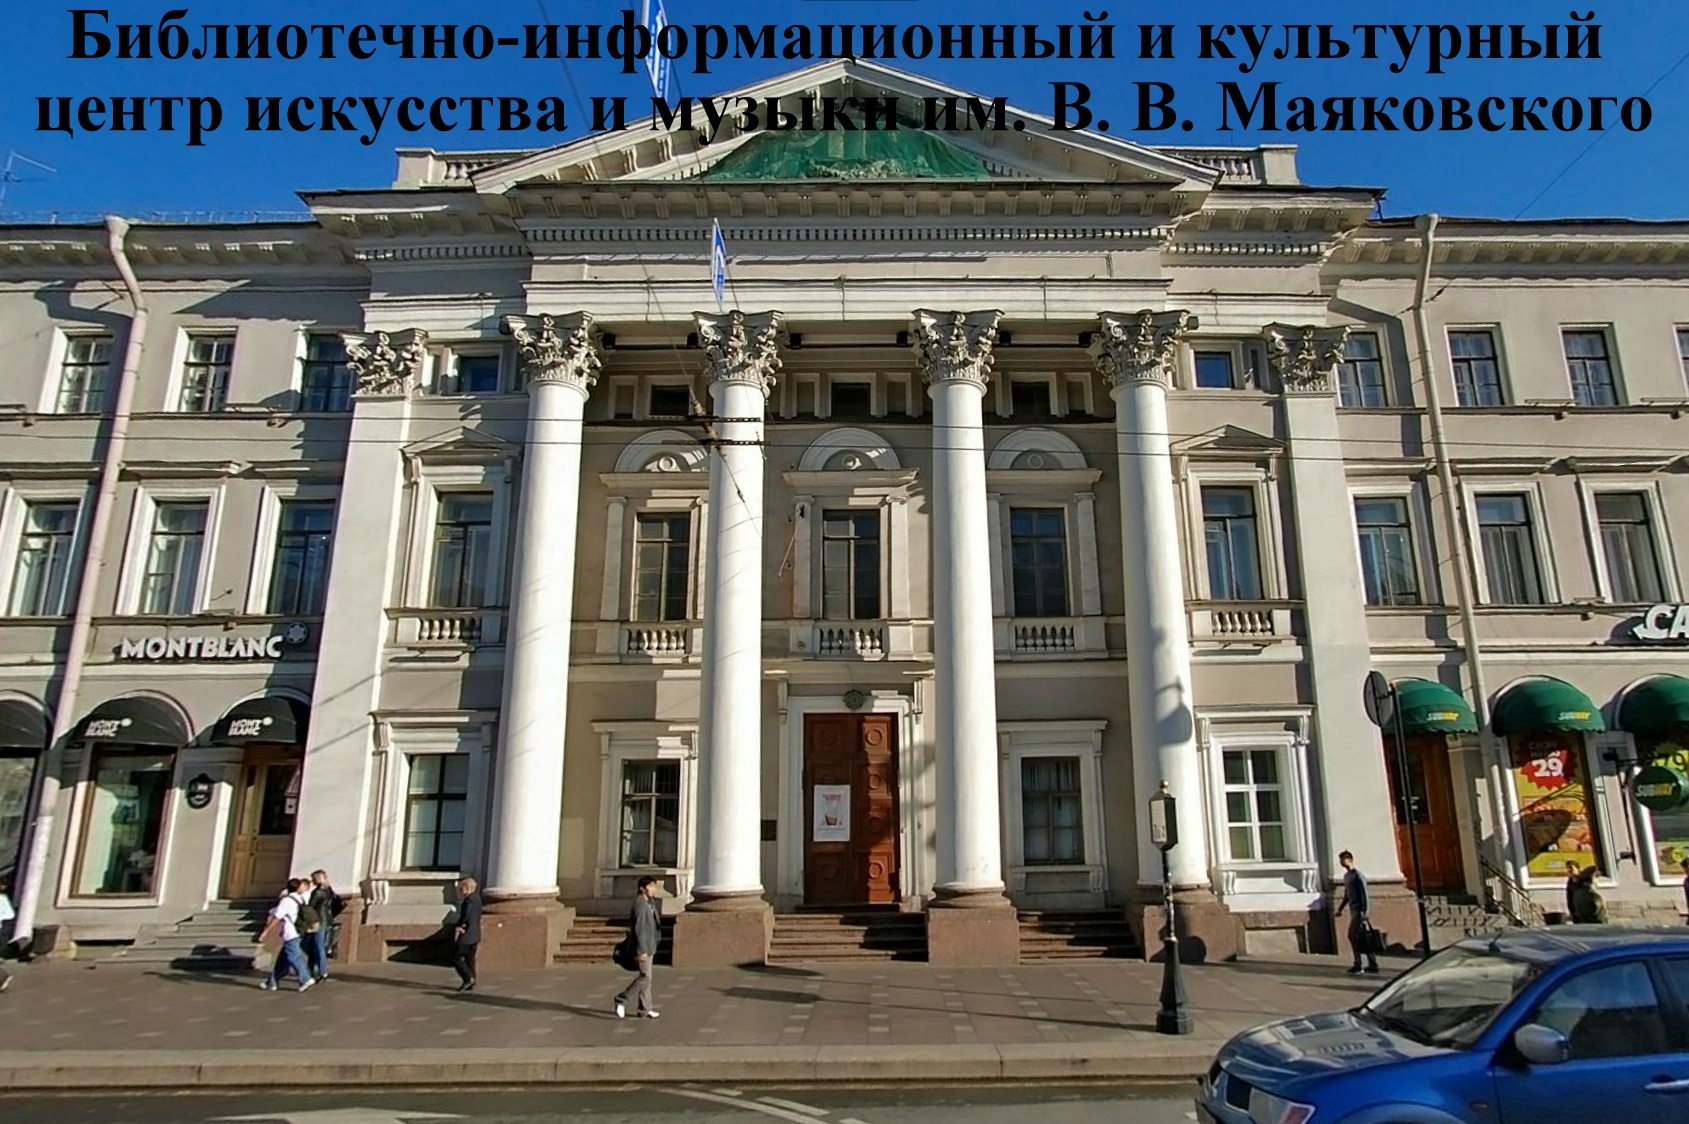 Library information and cultural center of art and music by naned of Centuries Mayakovsky